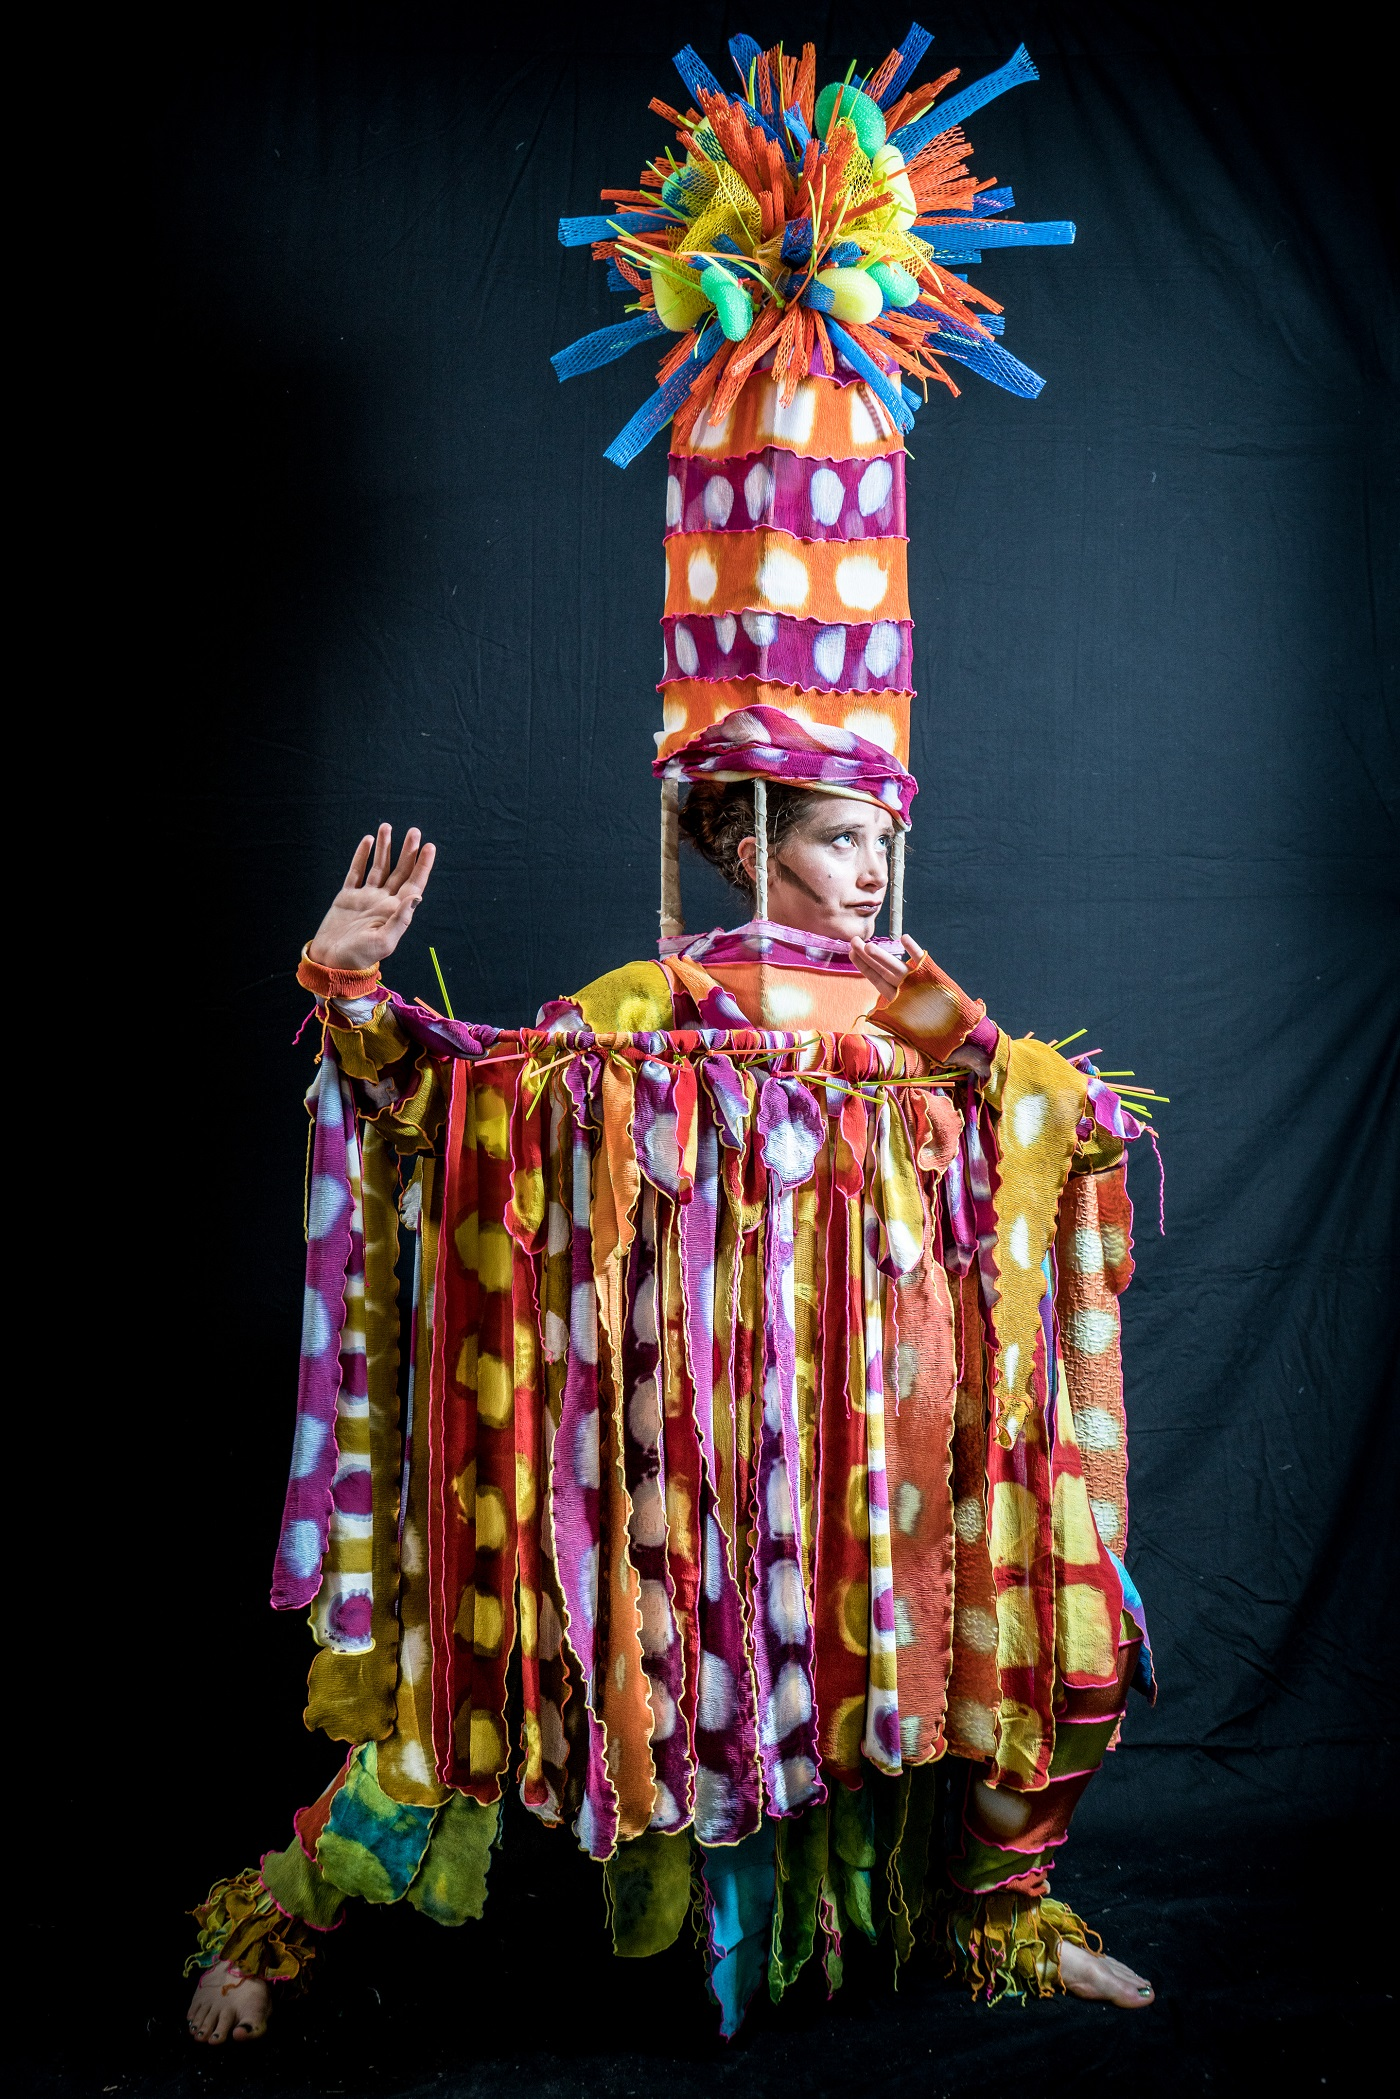 """Imagined Africa"" by Judith Bird, modeled by Ellie Taylor Photo Credit: Phil Baumgaertner"